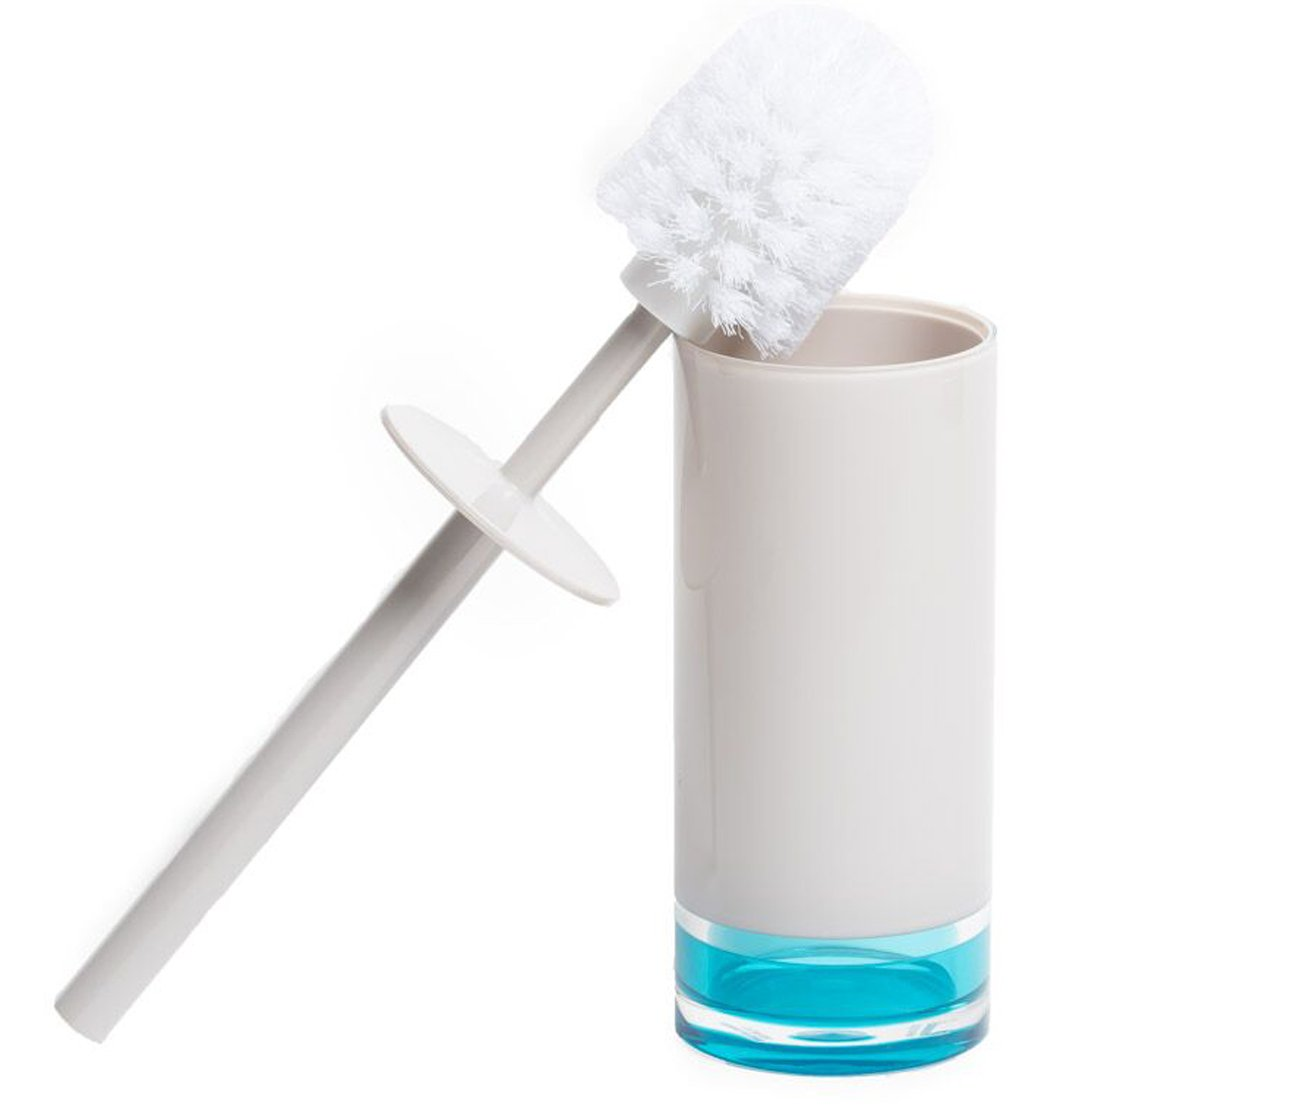 IMMANUEL Float Premium MS Acrylic Toilet Brush With Canister | Two-tone | Blue-Turquoise/Aqua White | Modern Home Decor